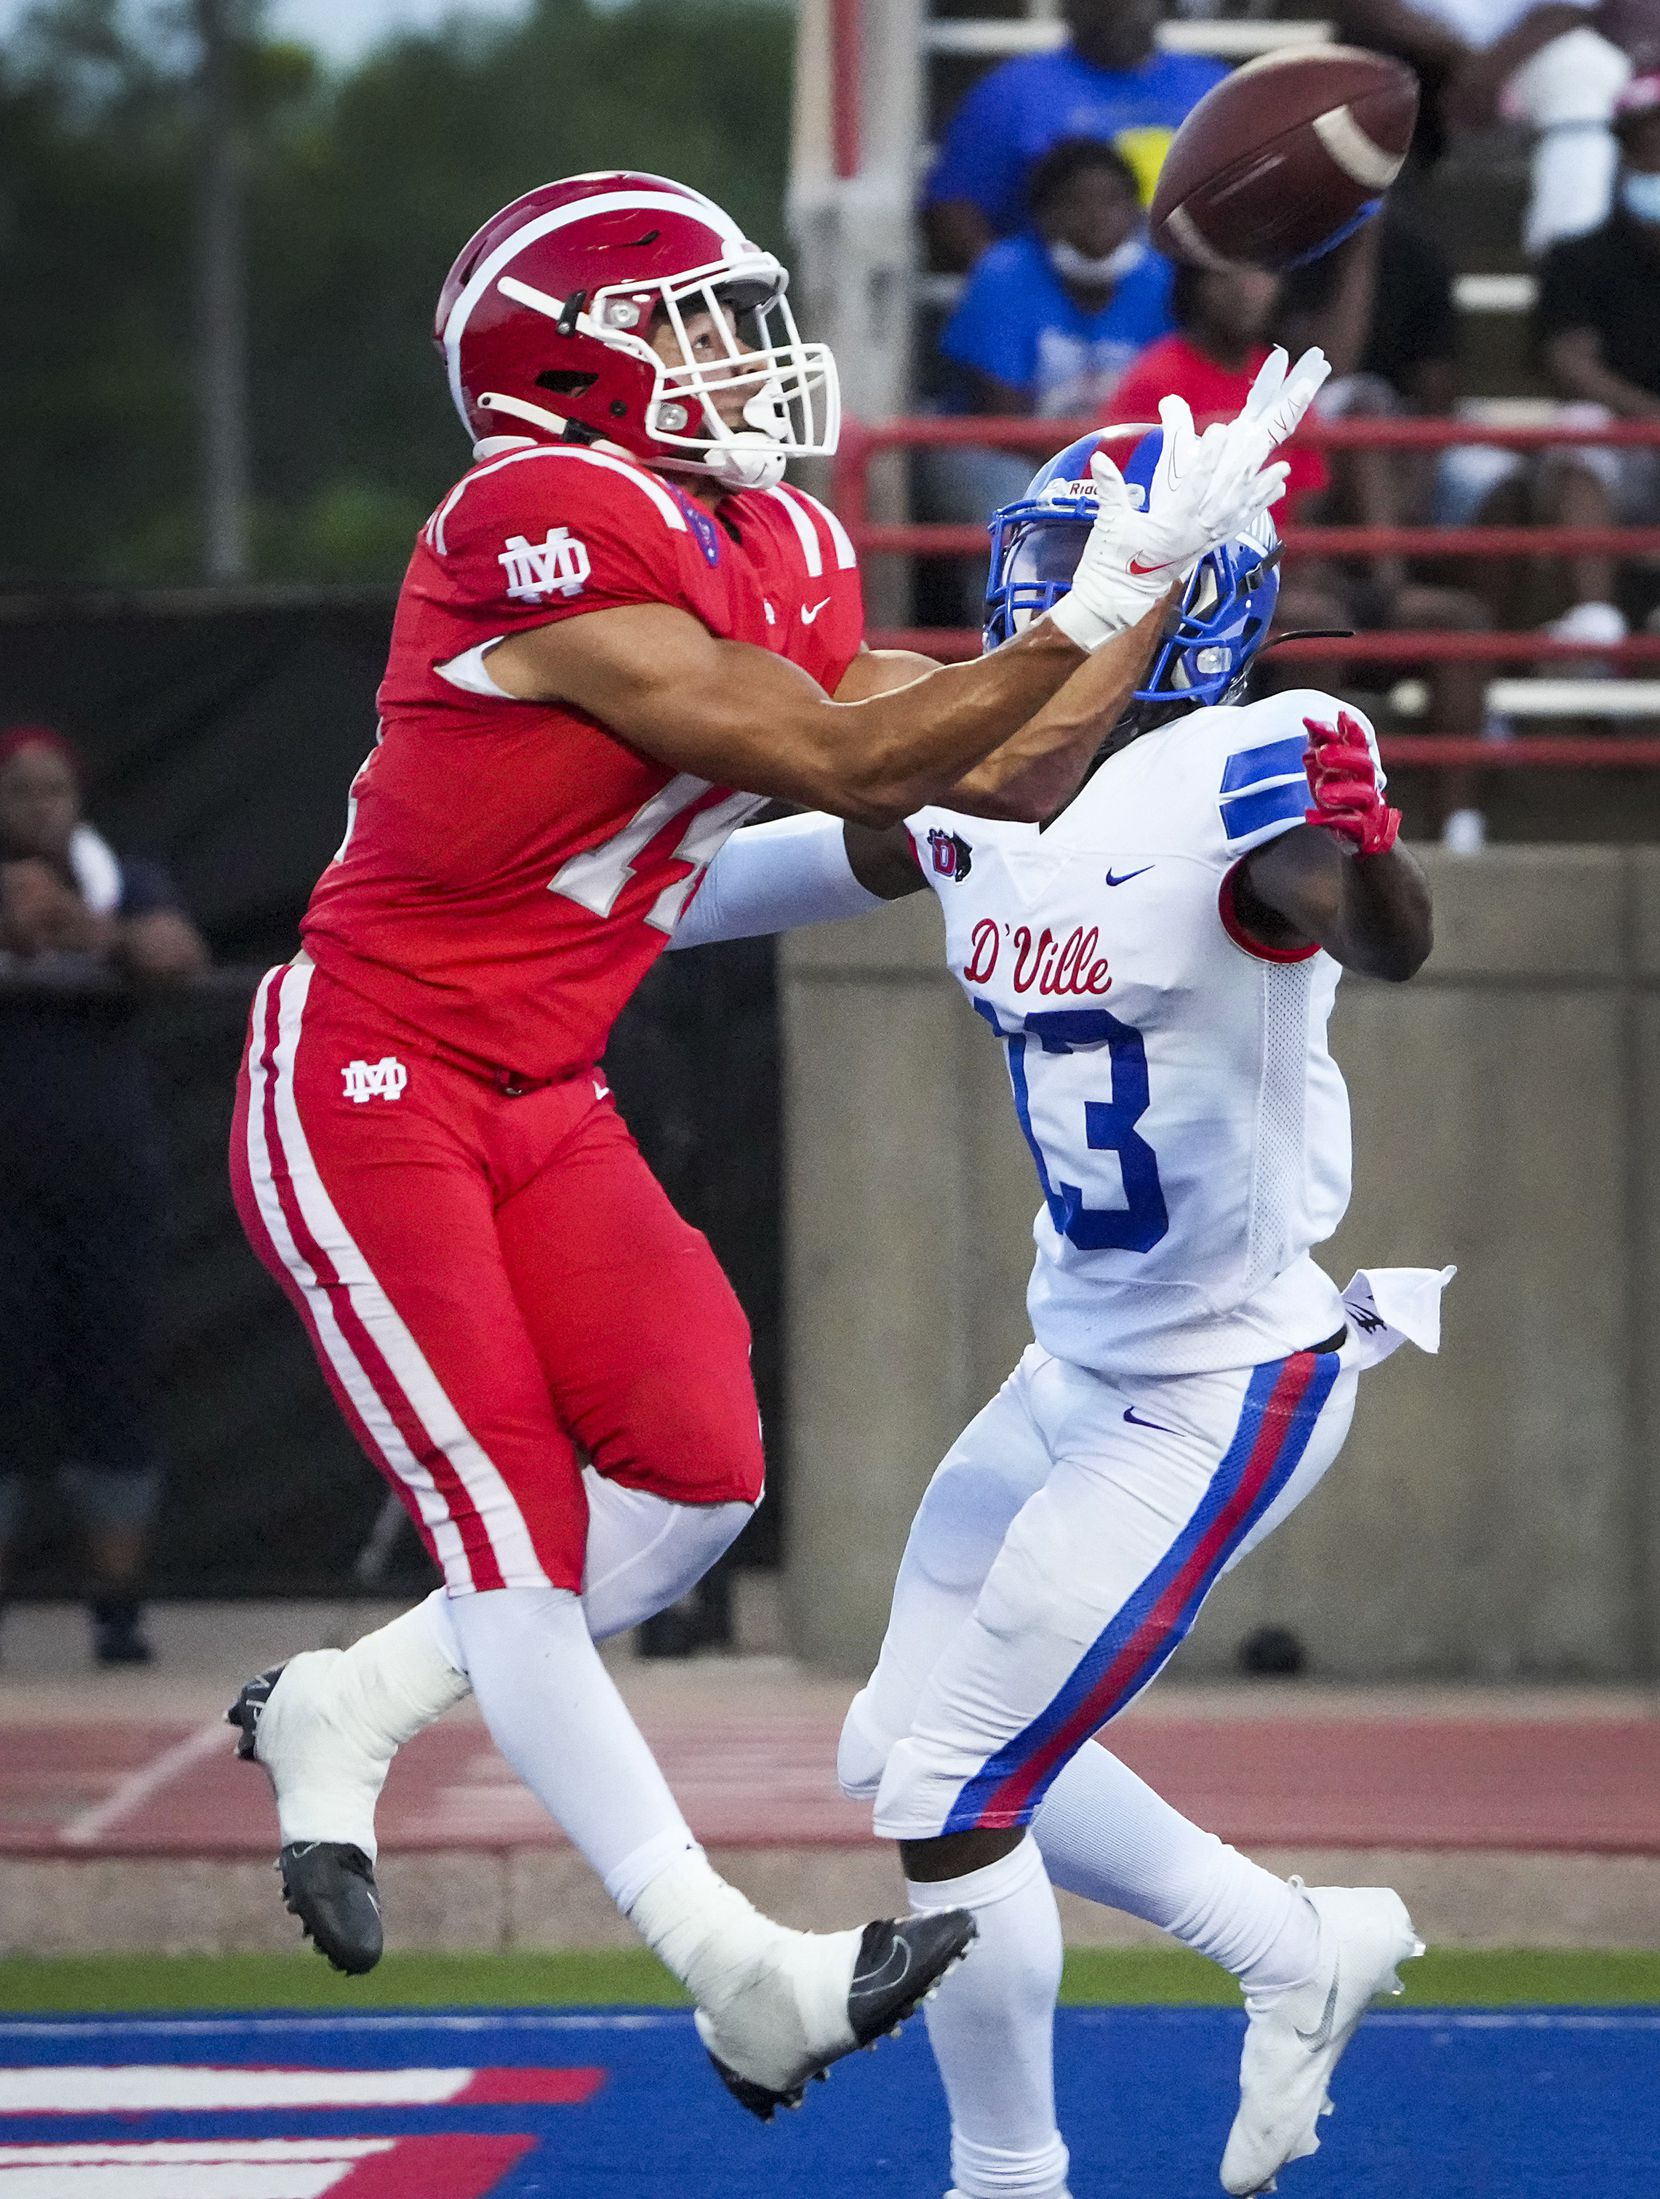 Mater Dei defensive back Joshua Hunter (14) intercepts a pass in the end zone intended for Duncanville wide receiver Chris Hicks (13) during the first half of a high school football game on Friday, Aug. 27, 2021, in Duncanville. (Smiley N. Pool/The Dallas Morning News)